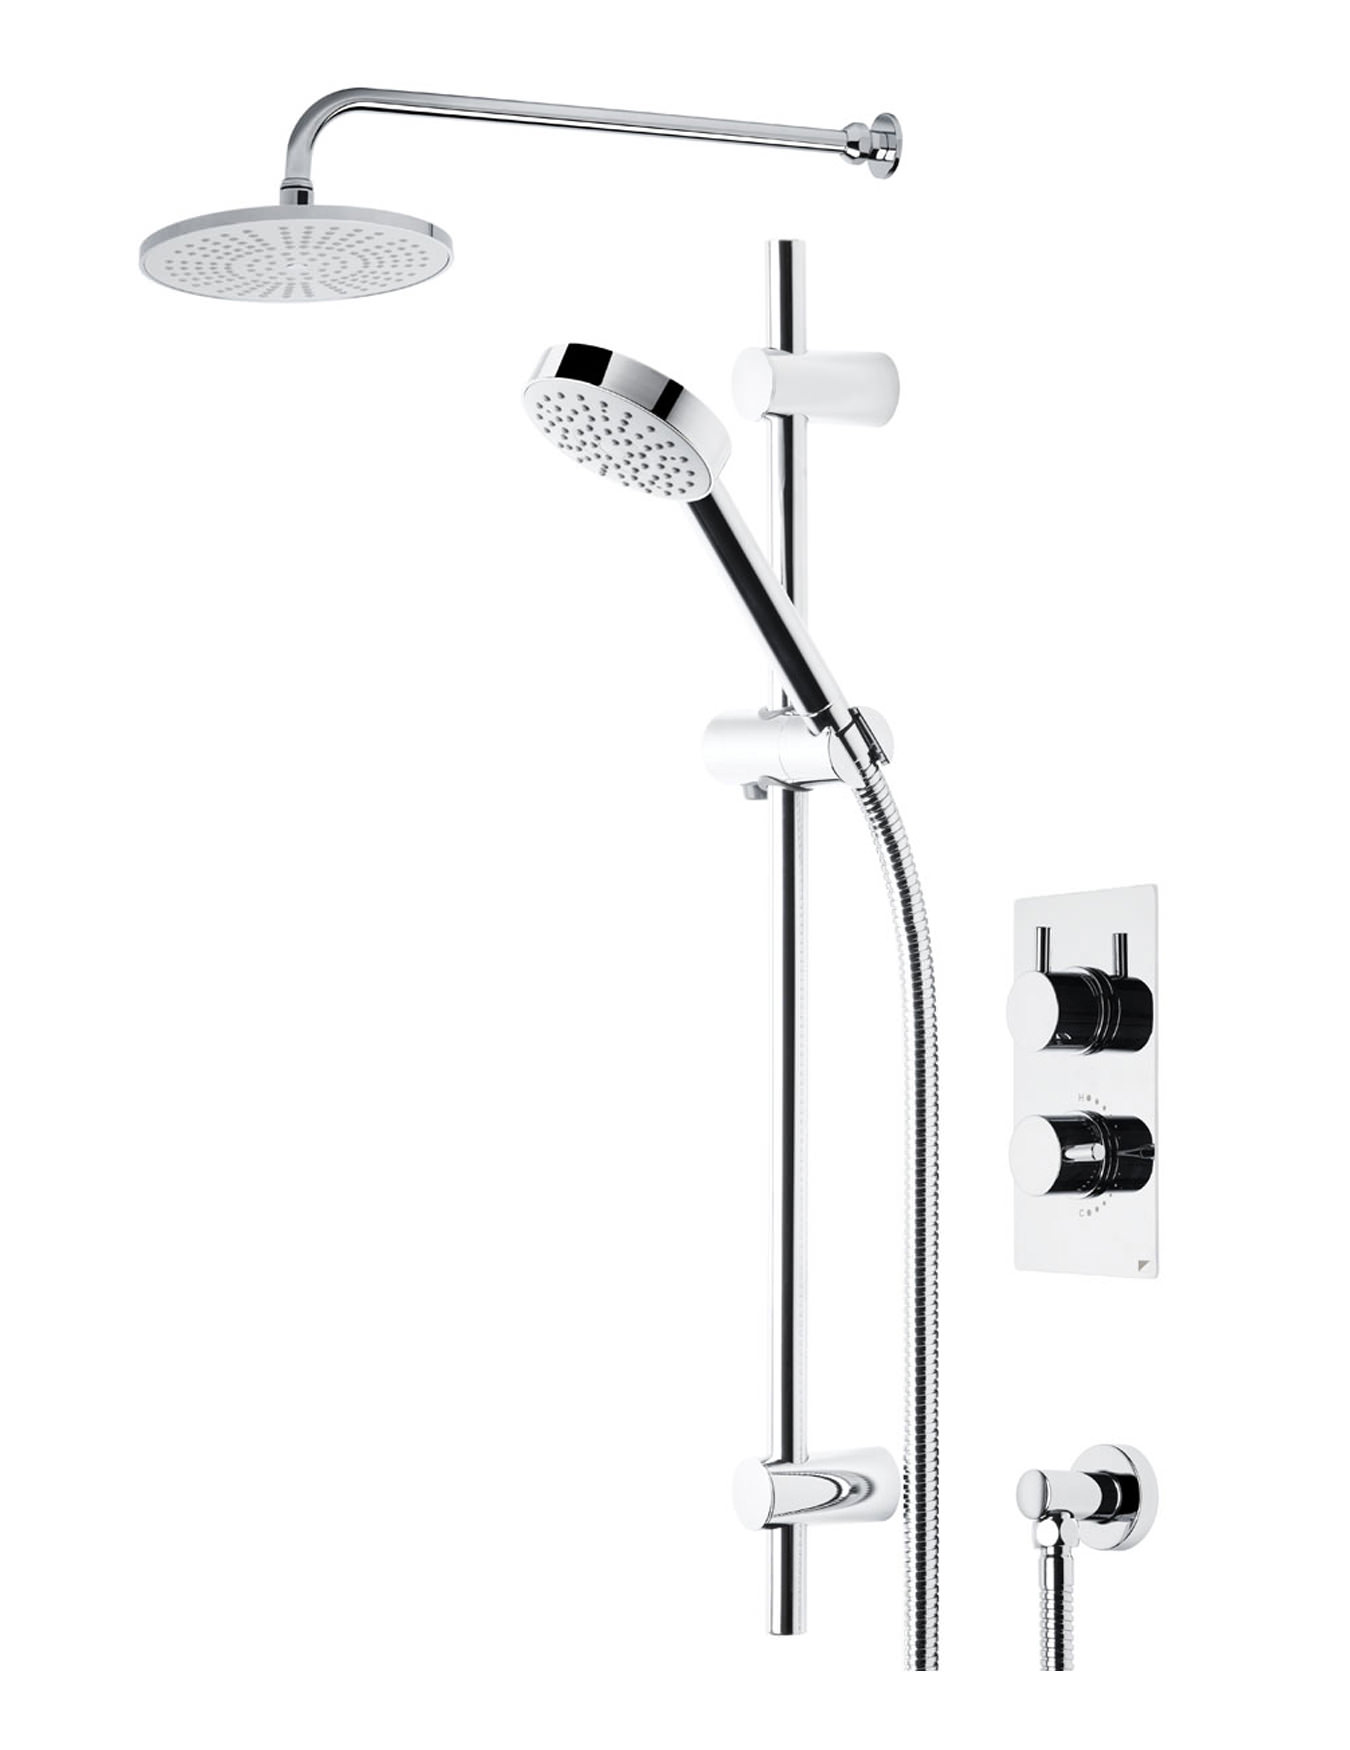 Roper Rhodes Event Round Dual Function Shower System With Fixed Shower Head